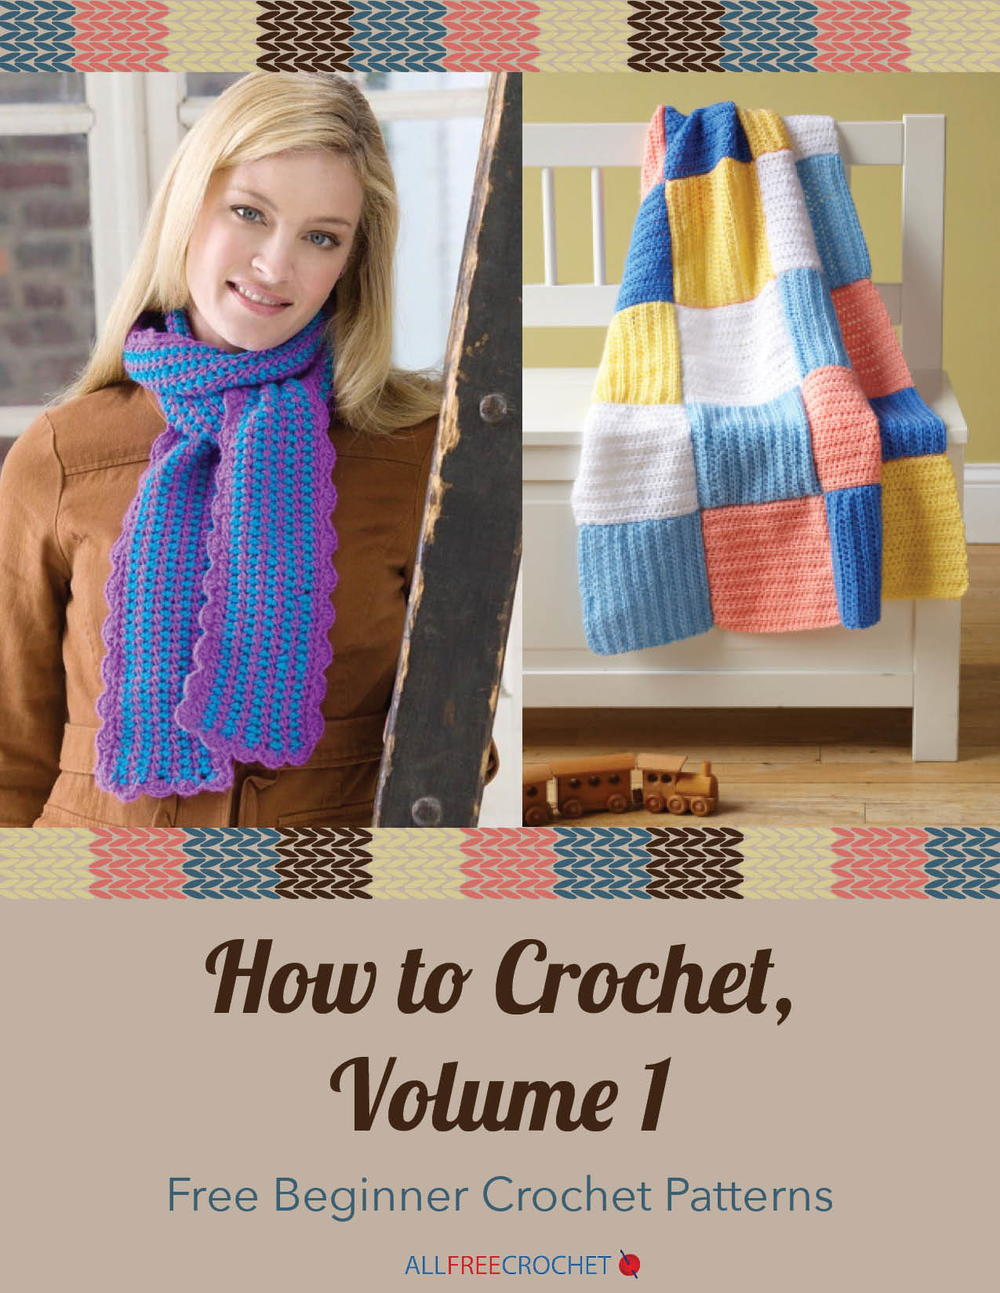 How To Crochet Beginner Patterns : How to Crochet, Volume 1: Free Beginner Crochet Patterns ...